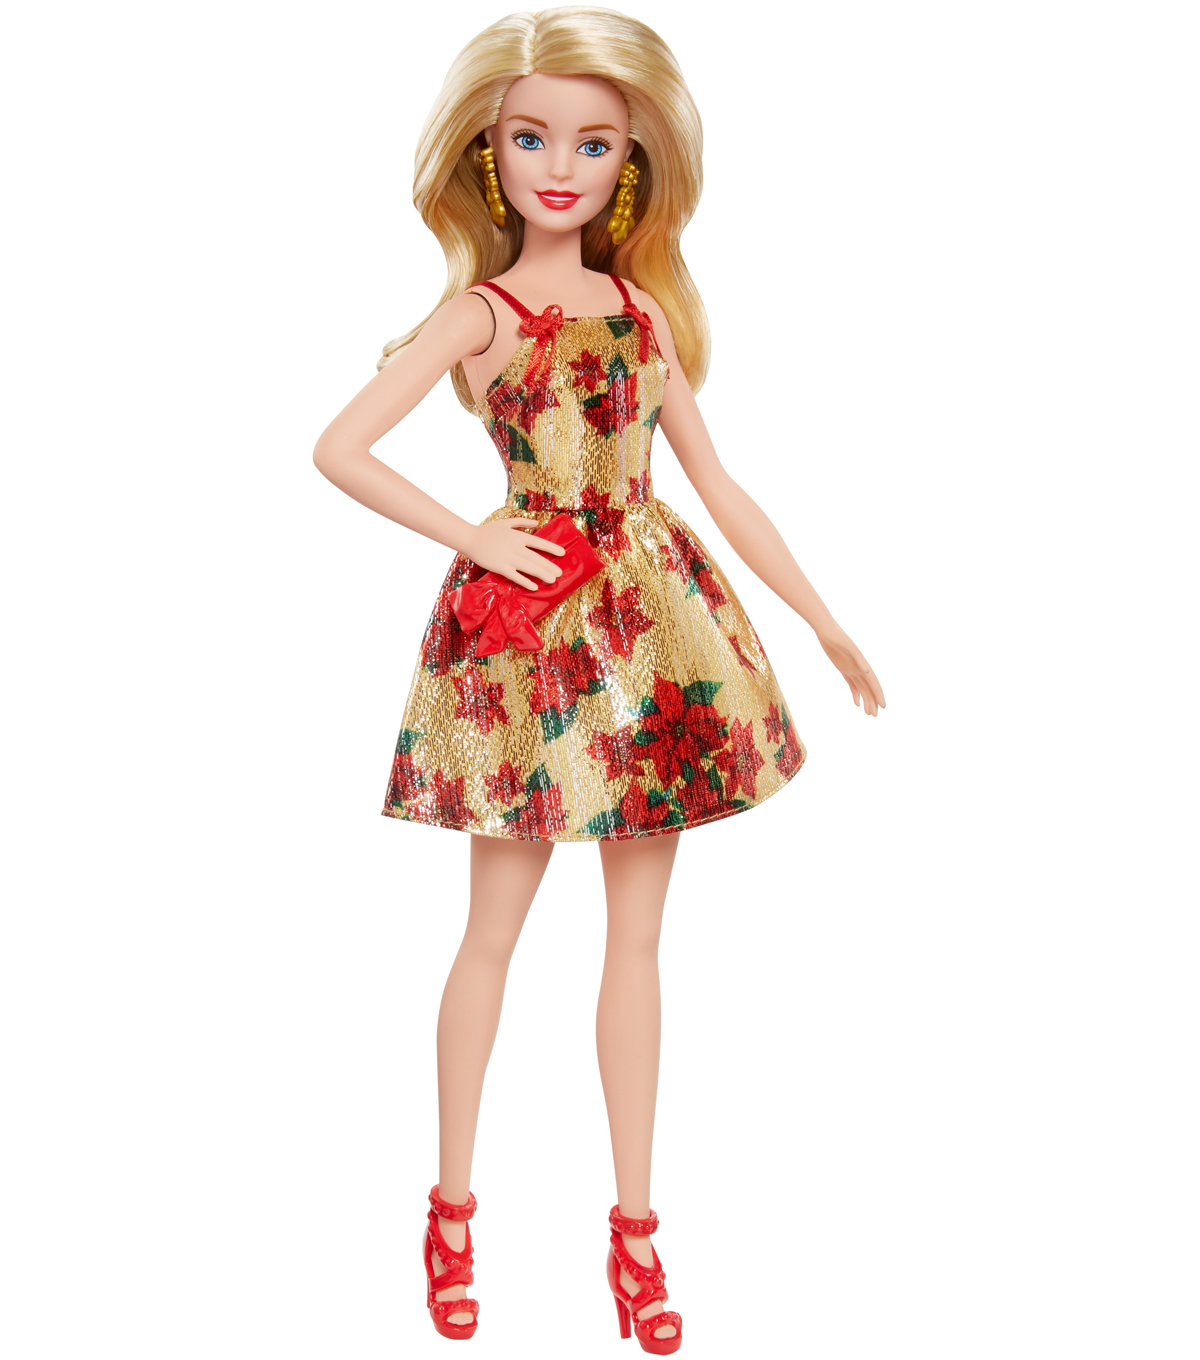 barbie doll with blonde